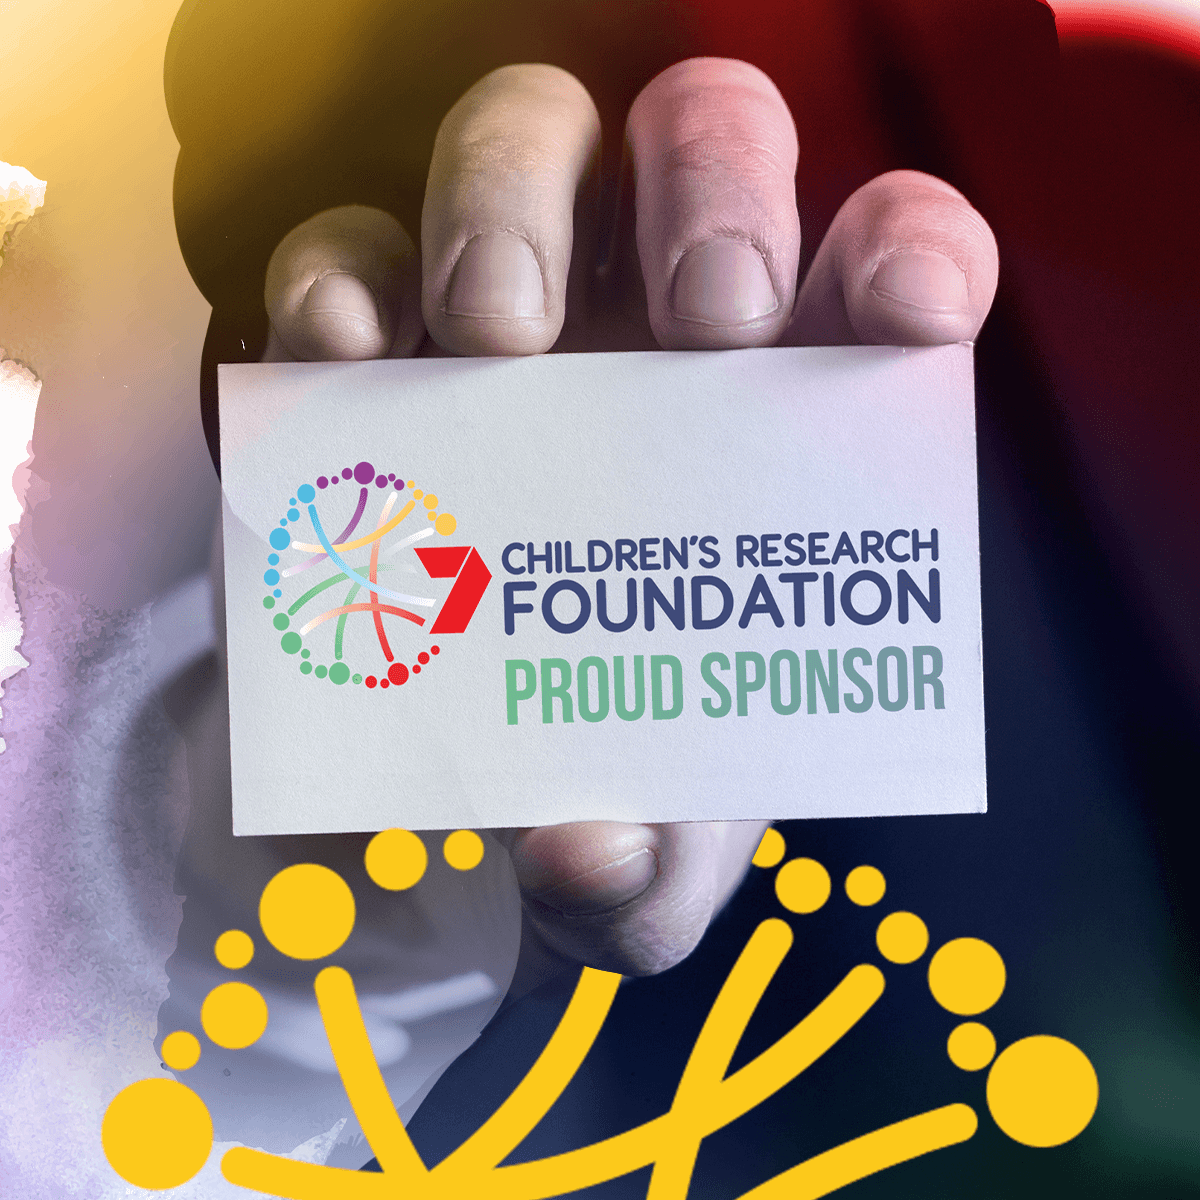 Partner With The Foundation